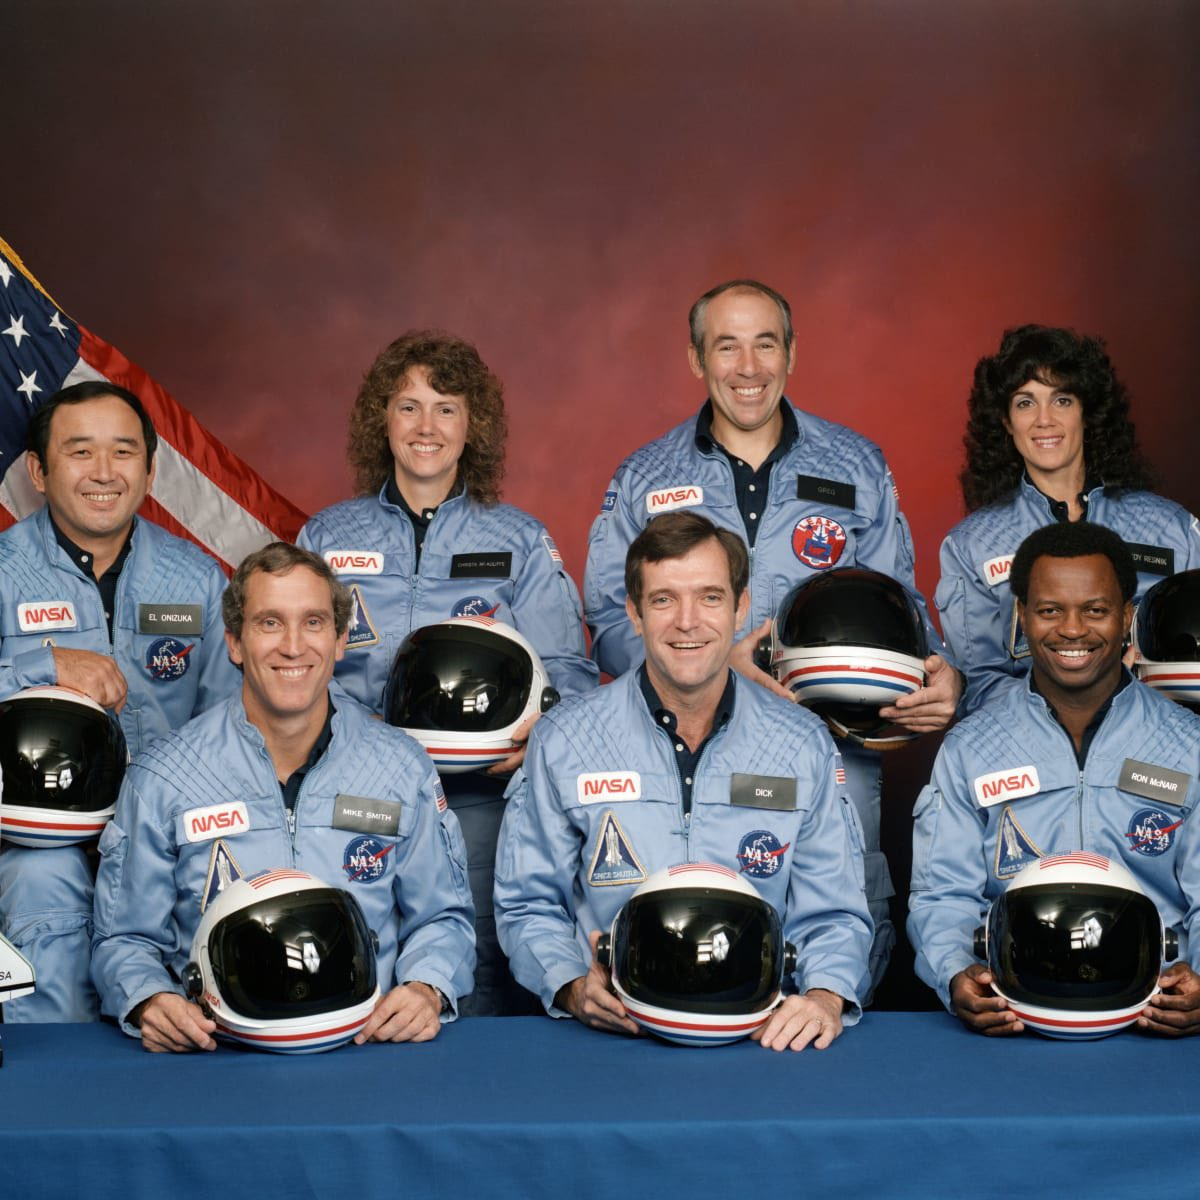 Today is the 35th anniversary of the #Challenger disaster. I was under a week old that day, and have always felt connected to this tragedy and sad to think about all we lost. 😞